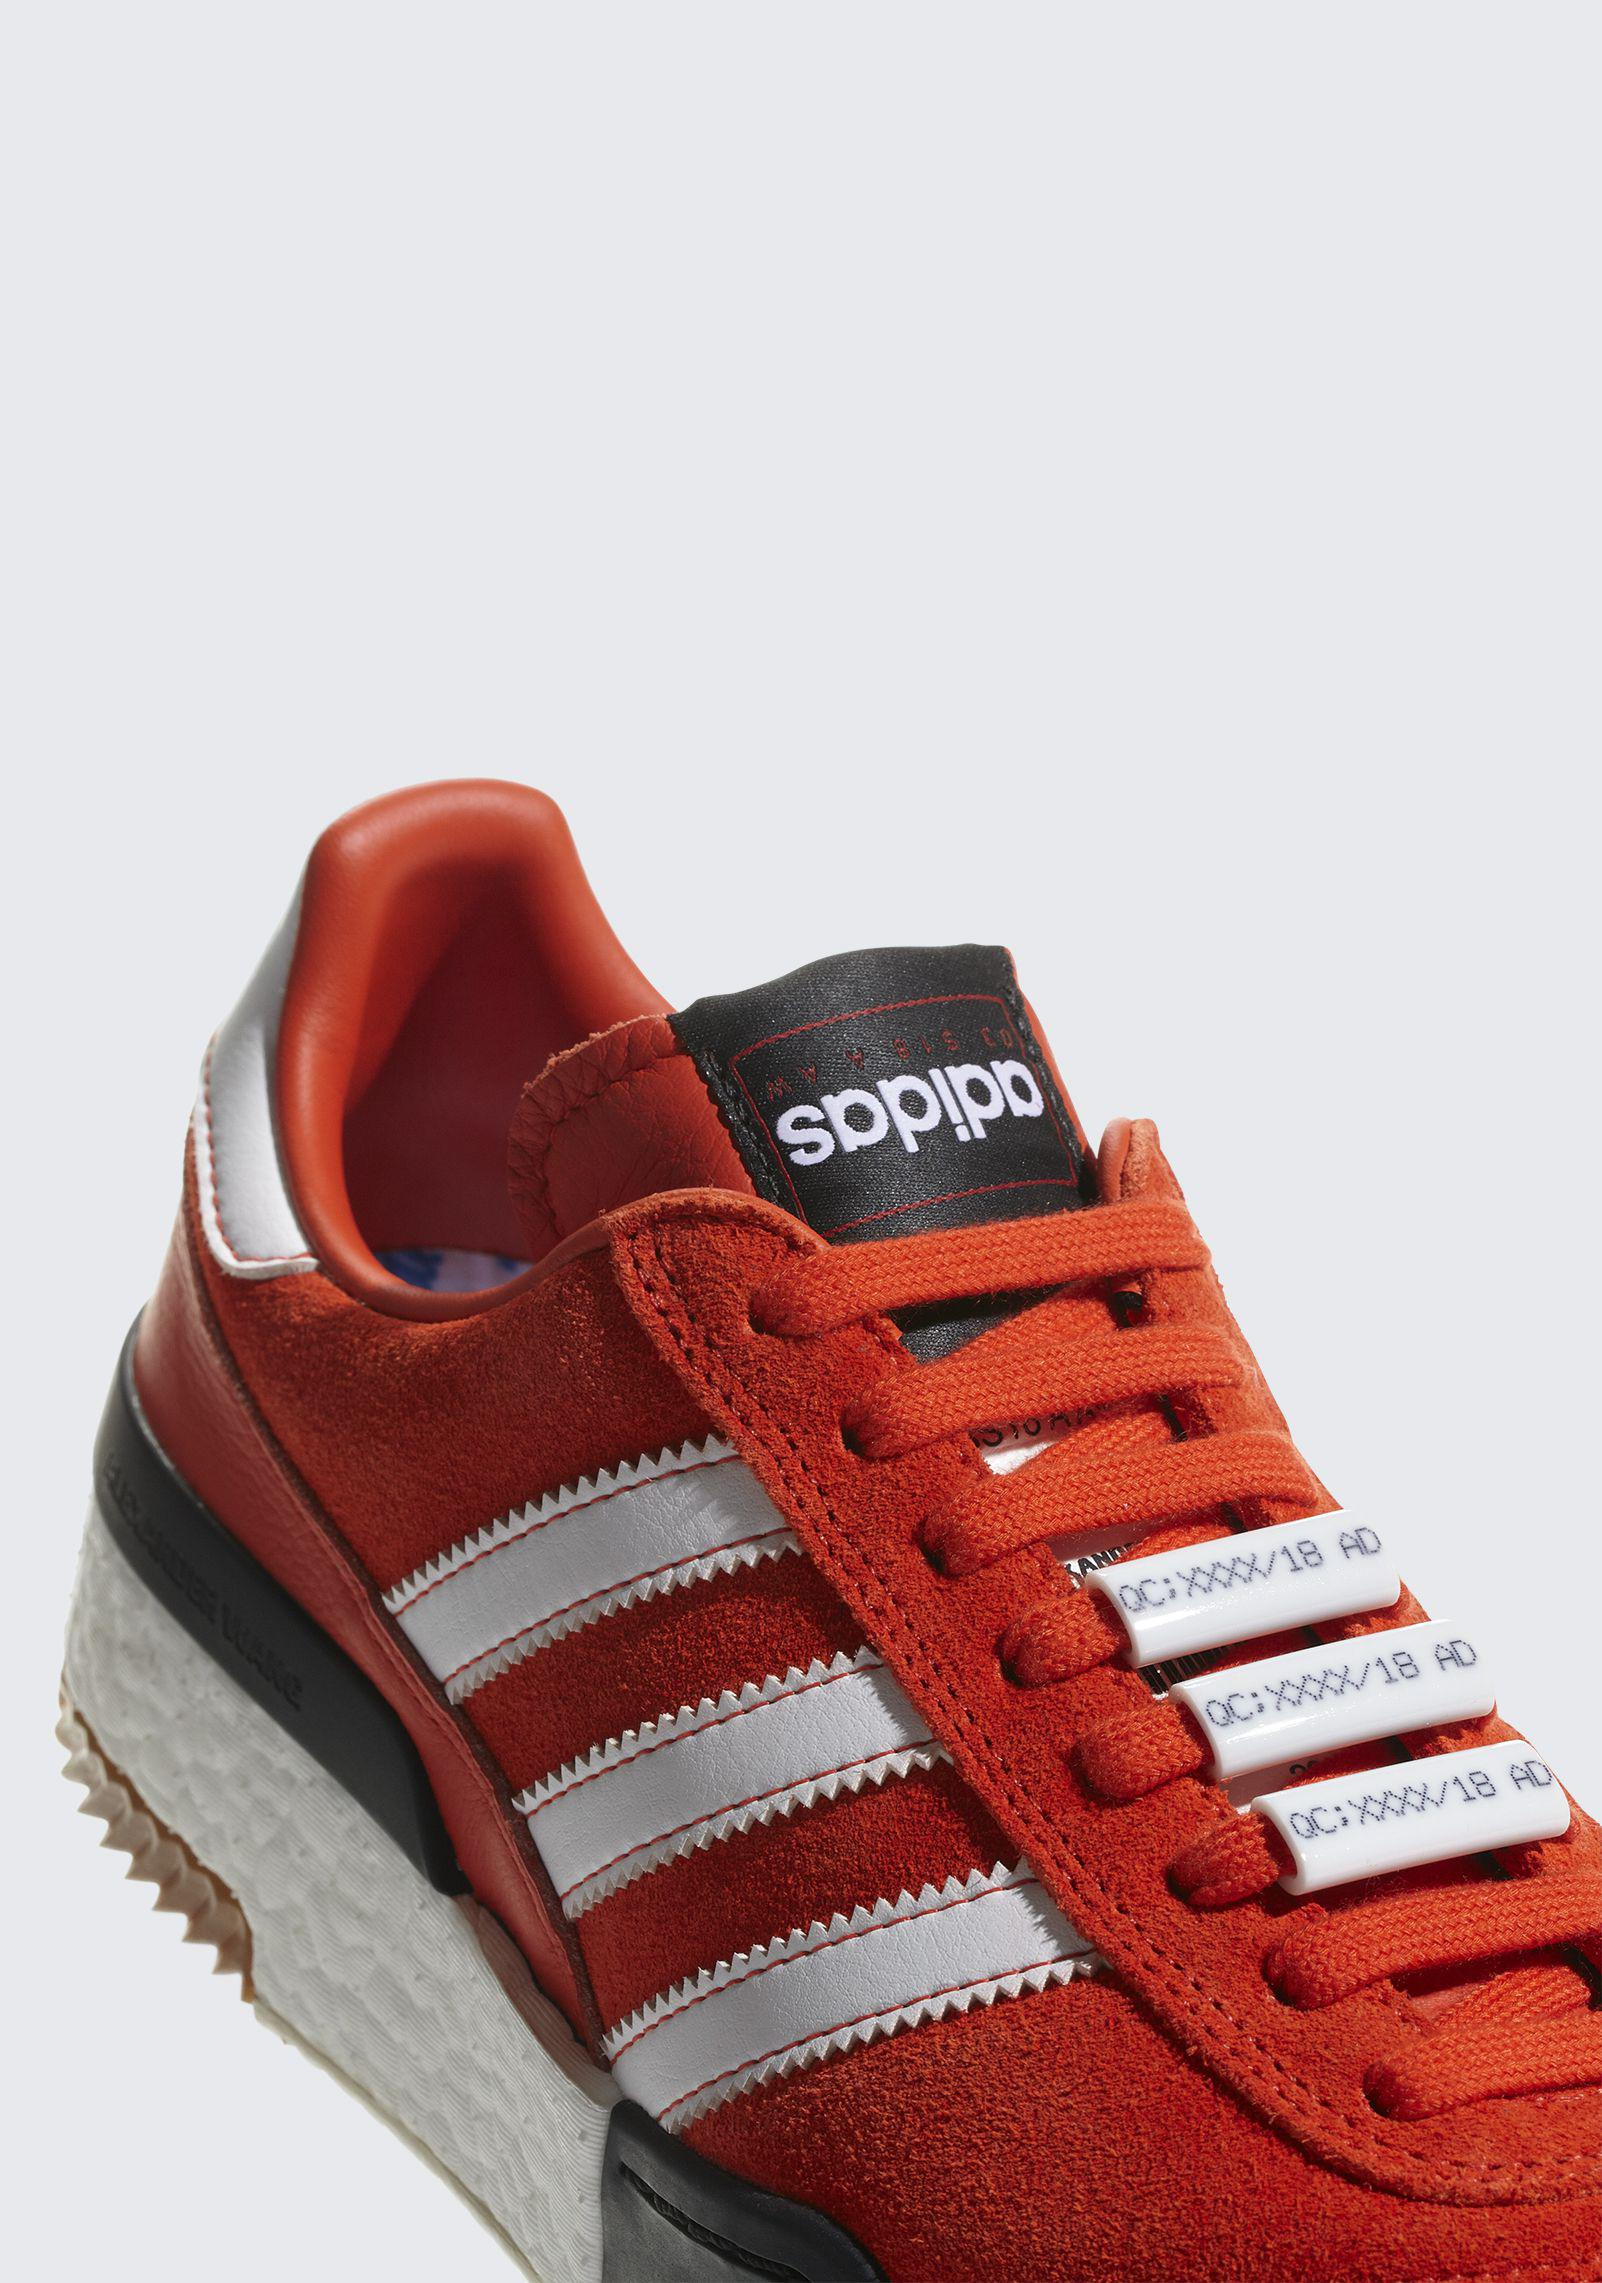 a57cb9cde5dd Alexander Wang Adidas Originals By Aw Bball Soccer Shoes in Red - Lyst